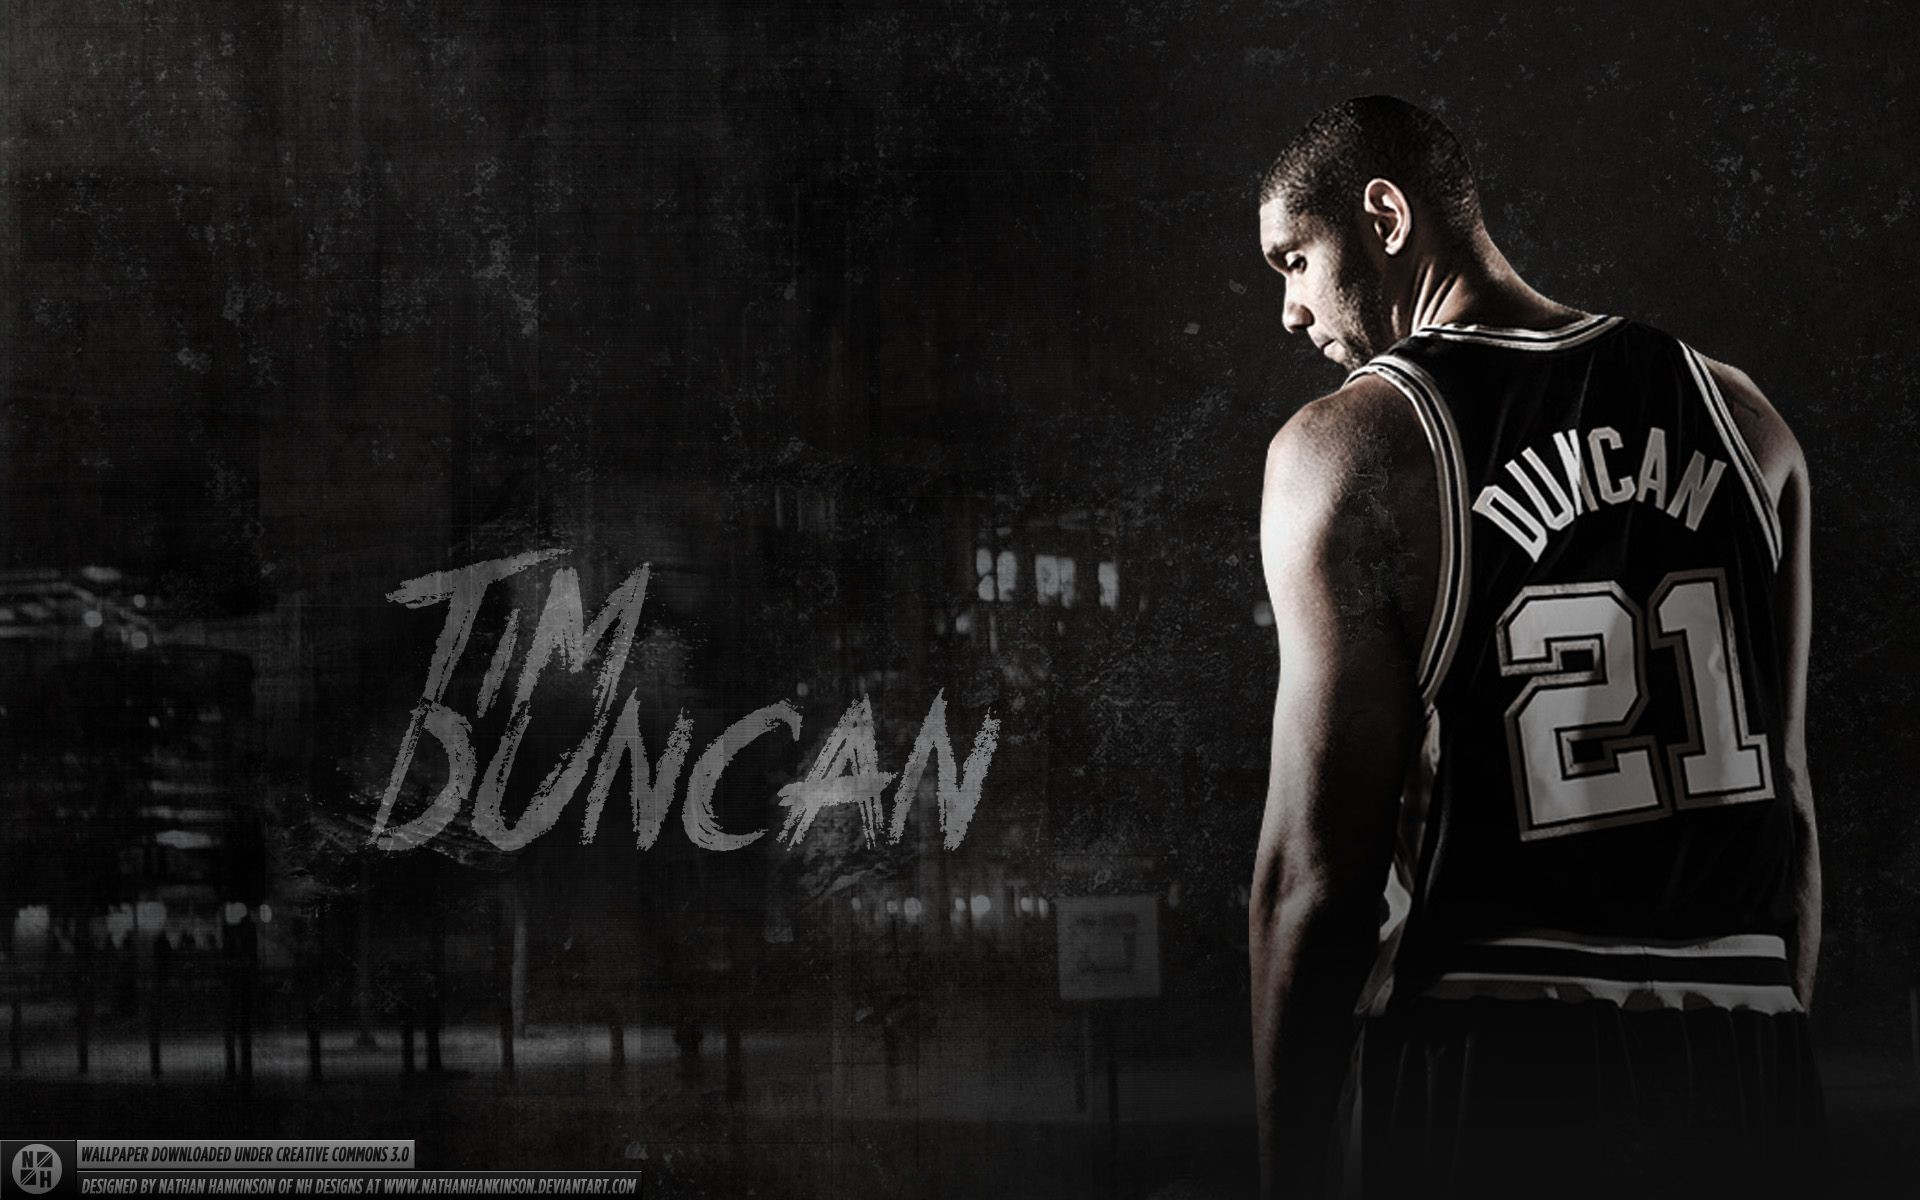 Spurs wallpaper 2018 73 images - Tim duncan iphone wallpaper ...